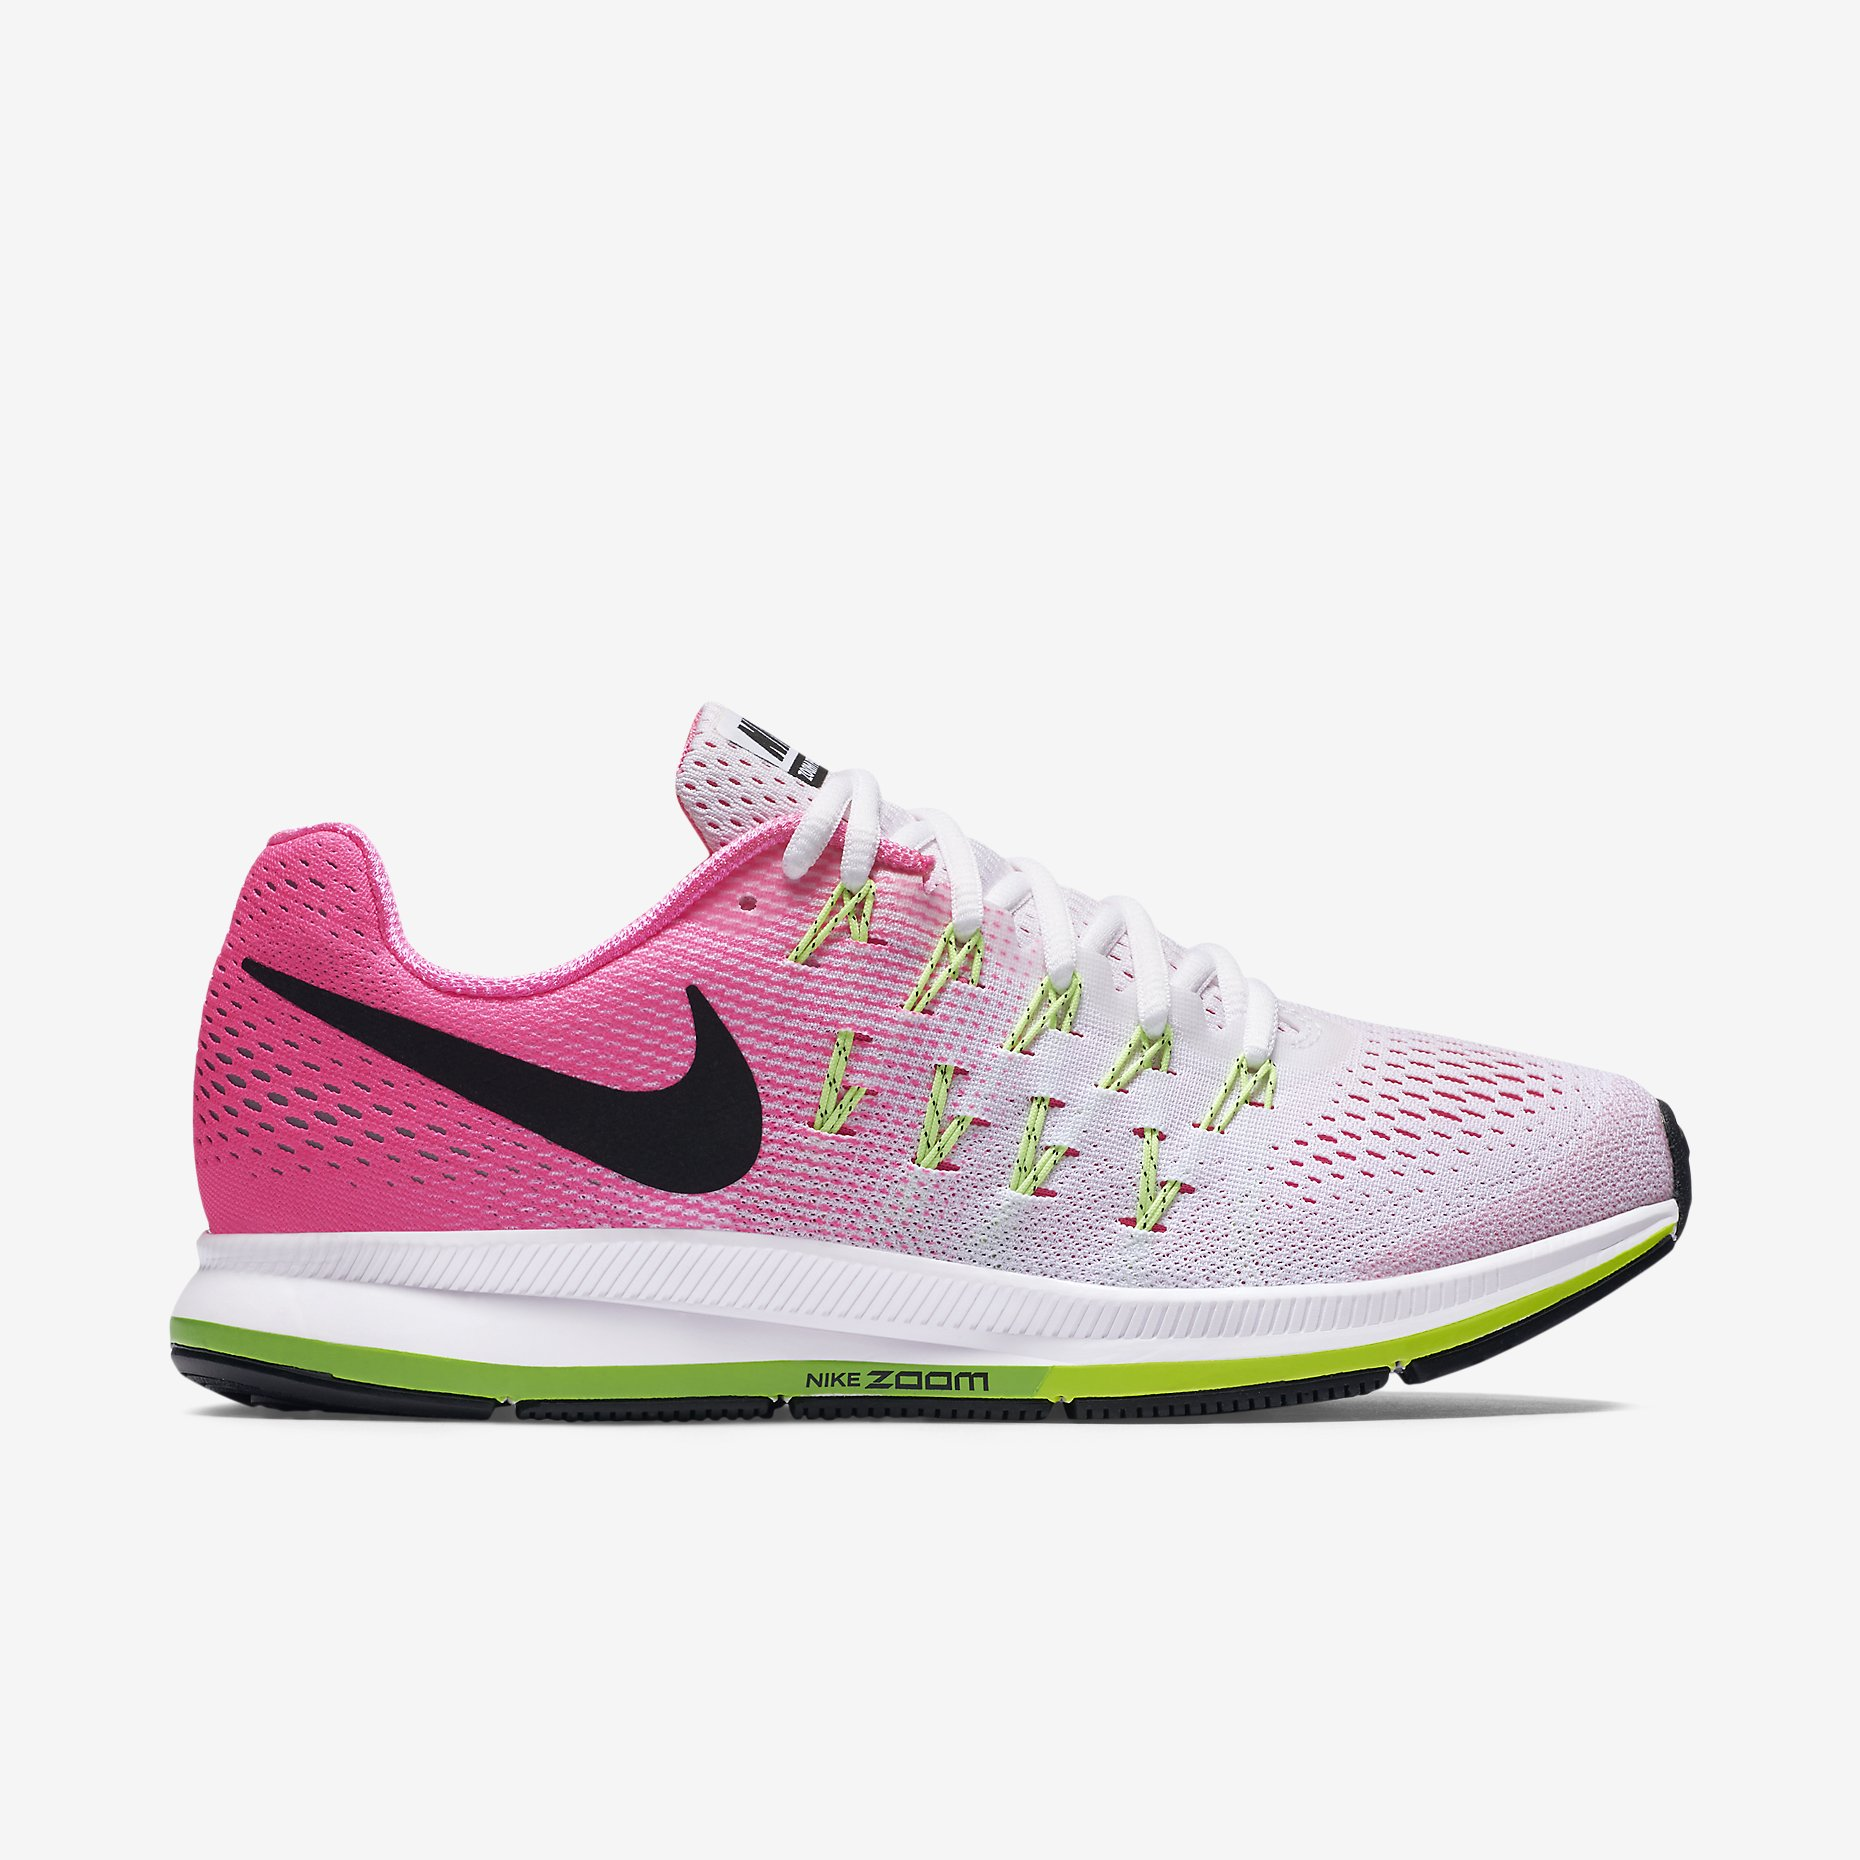 nike air zoom pegasus 33 women 39 s running shoes alton sports. Black Bedroom Furniture Sets. Home Design Ideas